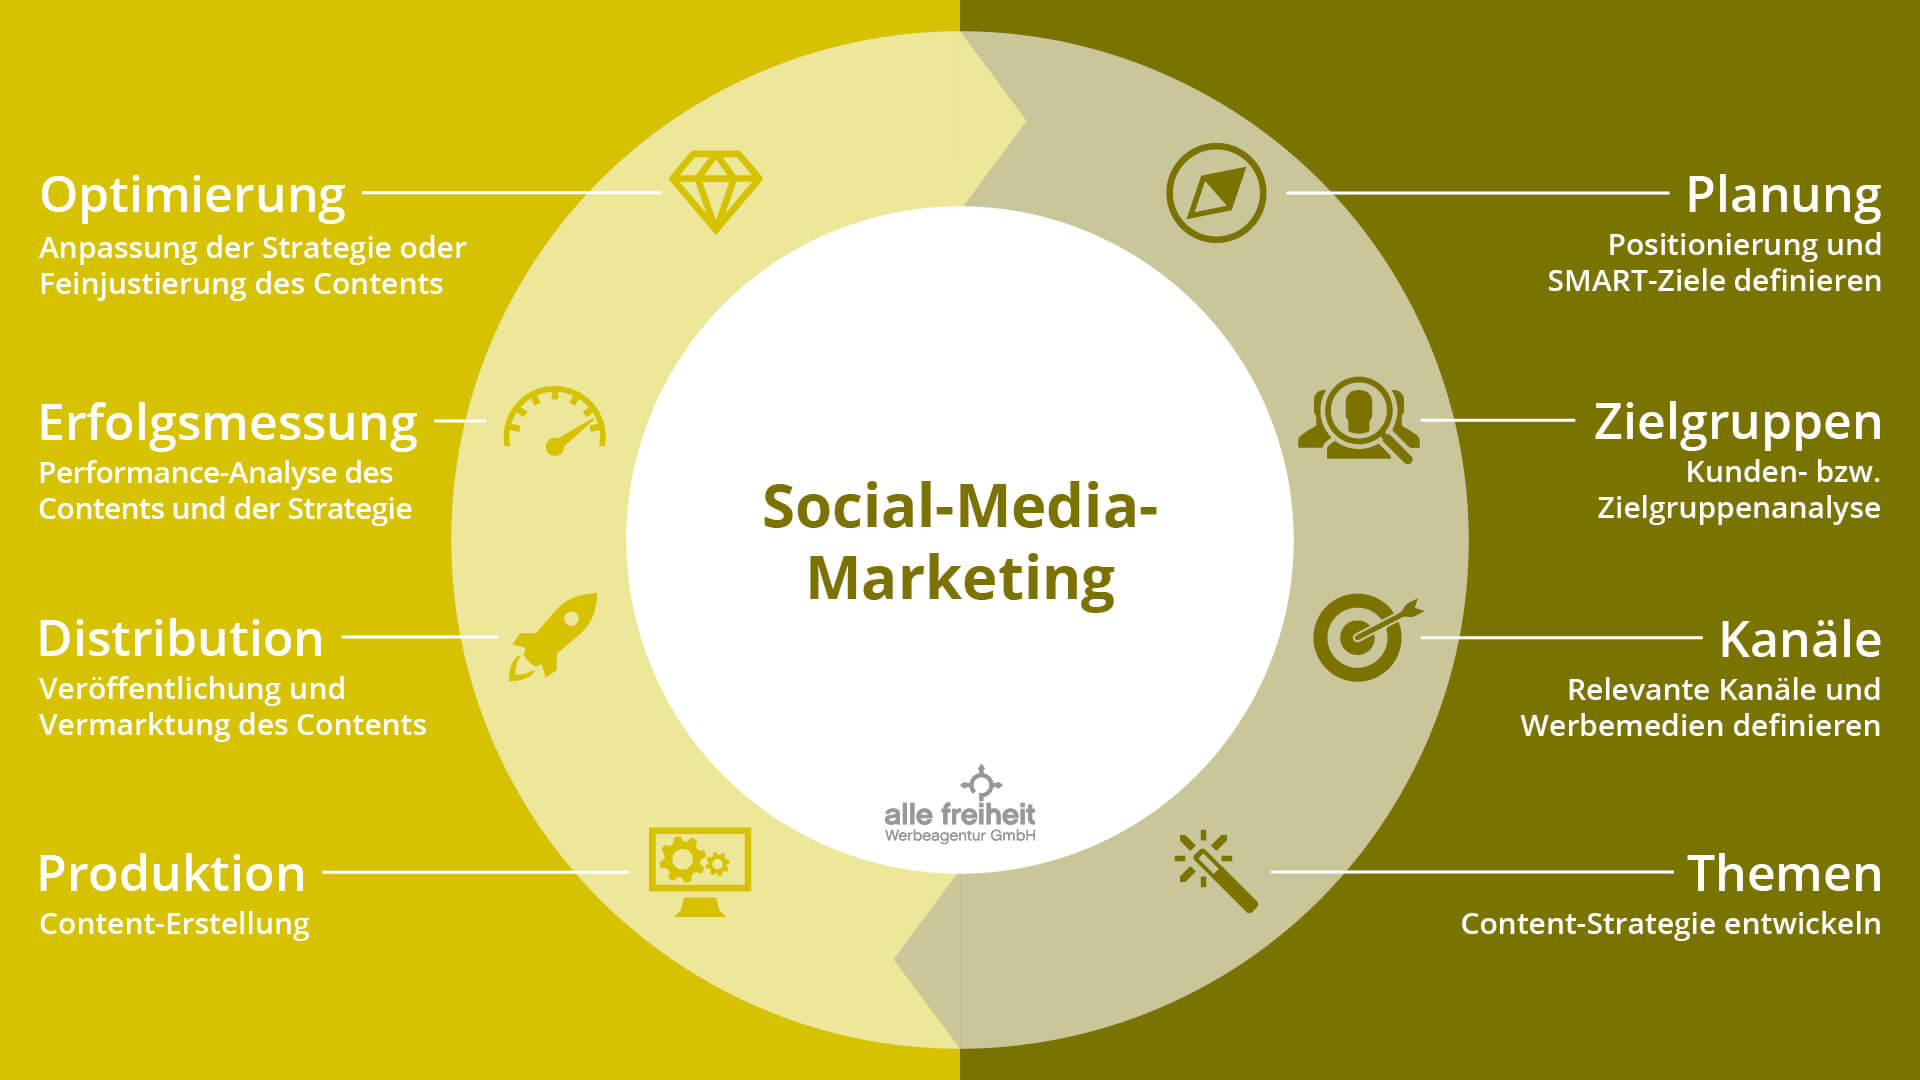 online marketing social media marketing allefreiheit